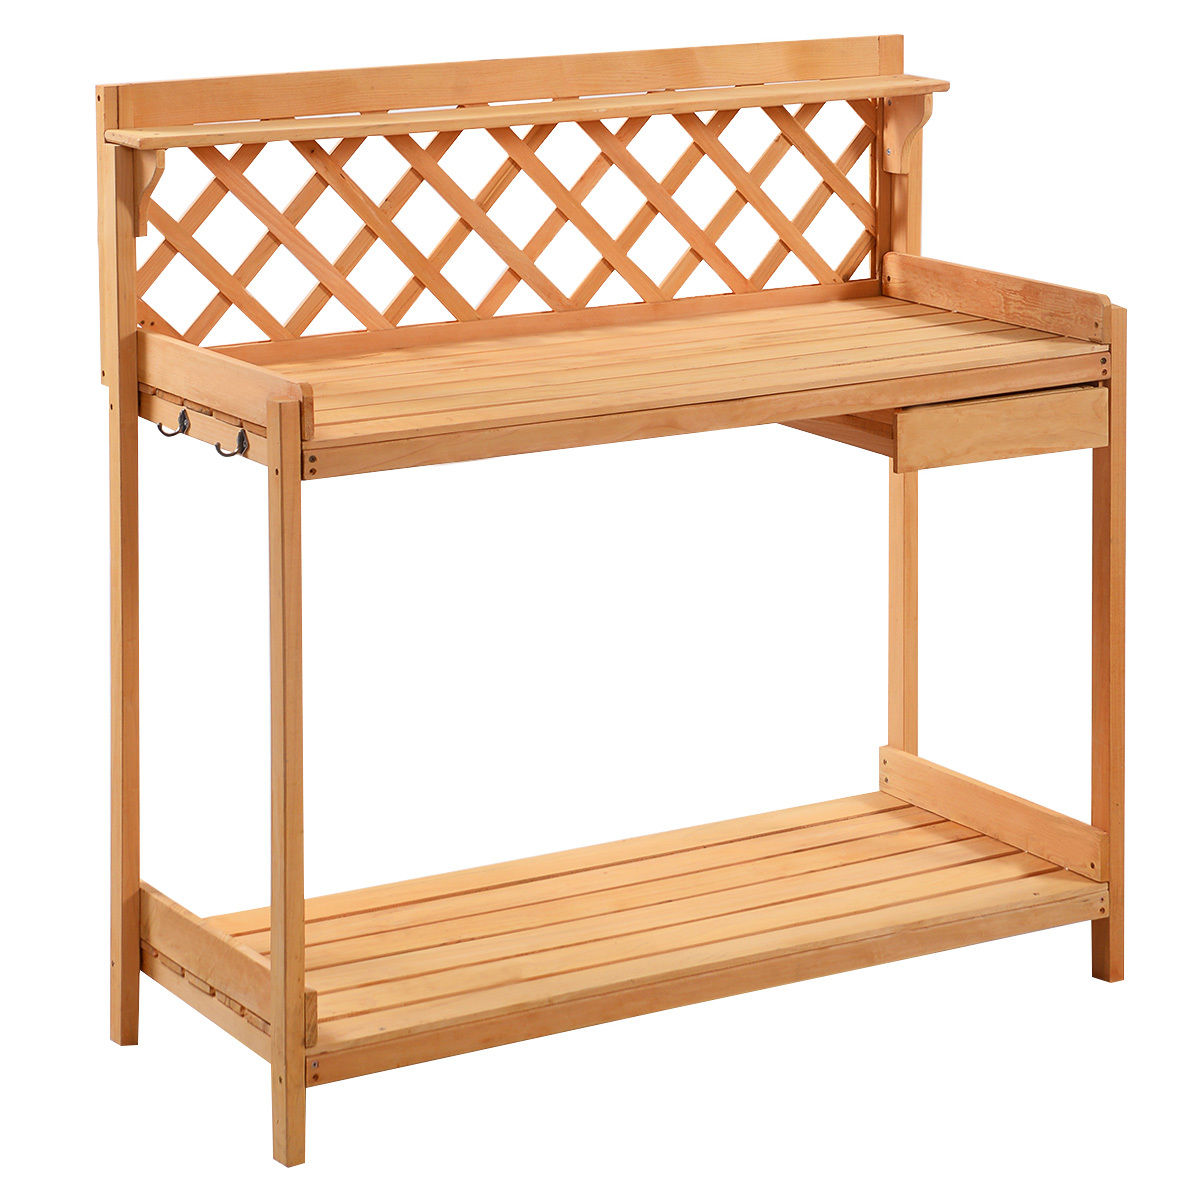 Gymax Potting Garden Work Bench Station Planting Solid Wood Construction